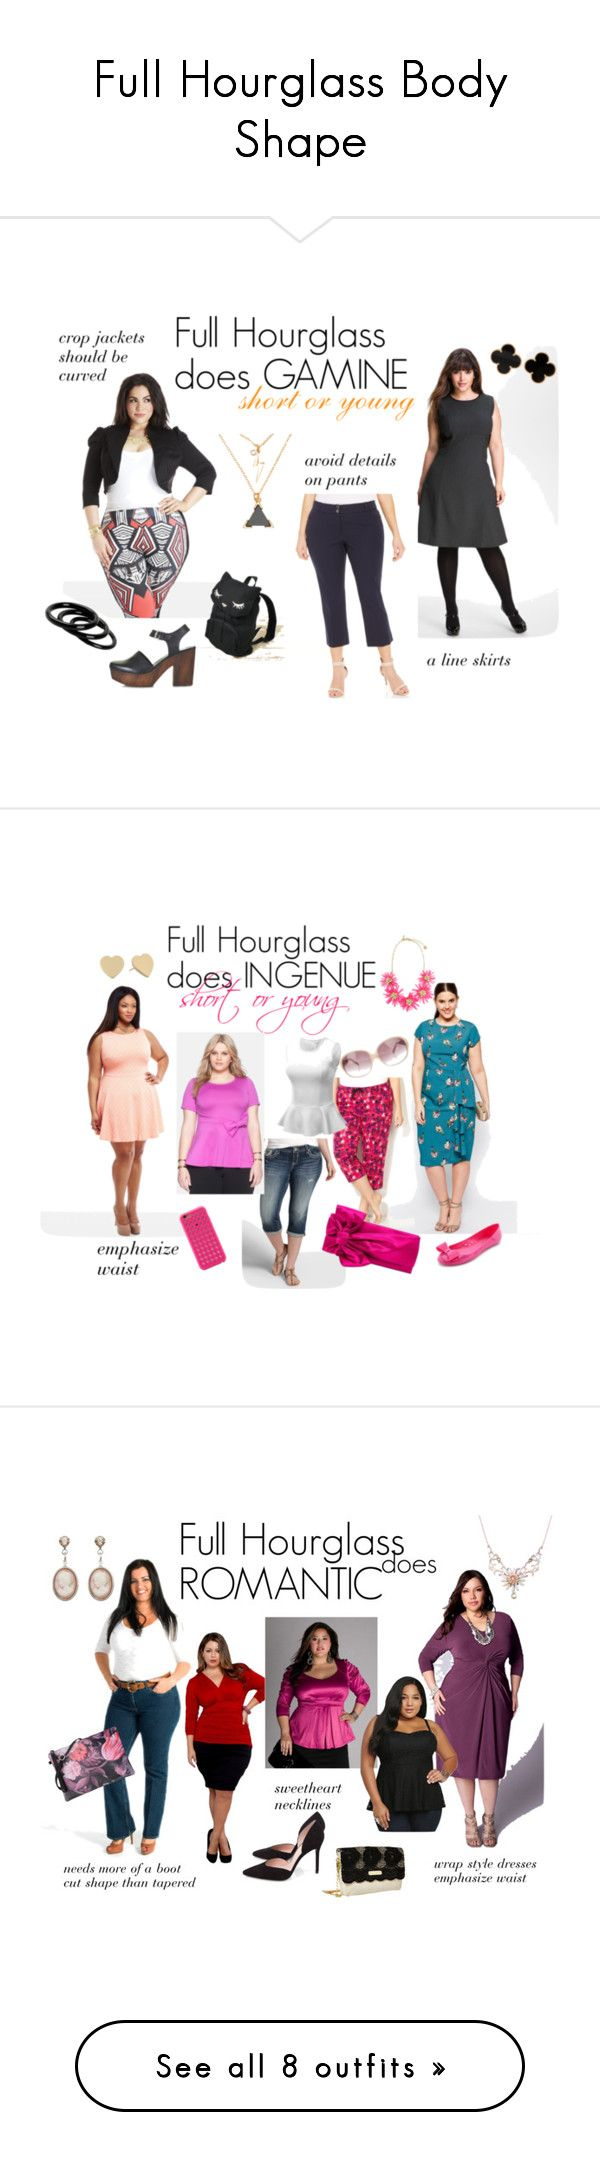 """Full Hourglass Body Shape"" by expressingyourtruth ❤ liked on Polyvore featuring Calvin Klein, Alfani, H&M, Van Cleef & Arpels, Furla, osumashi pooh-chan, Topshop, plus size clothing, ASOS Curve and Avenue"